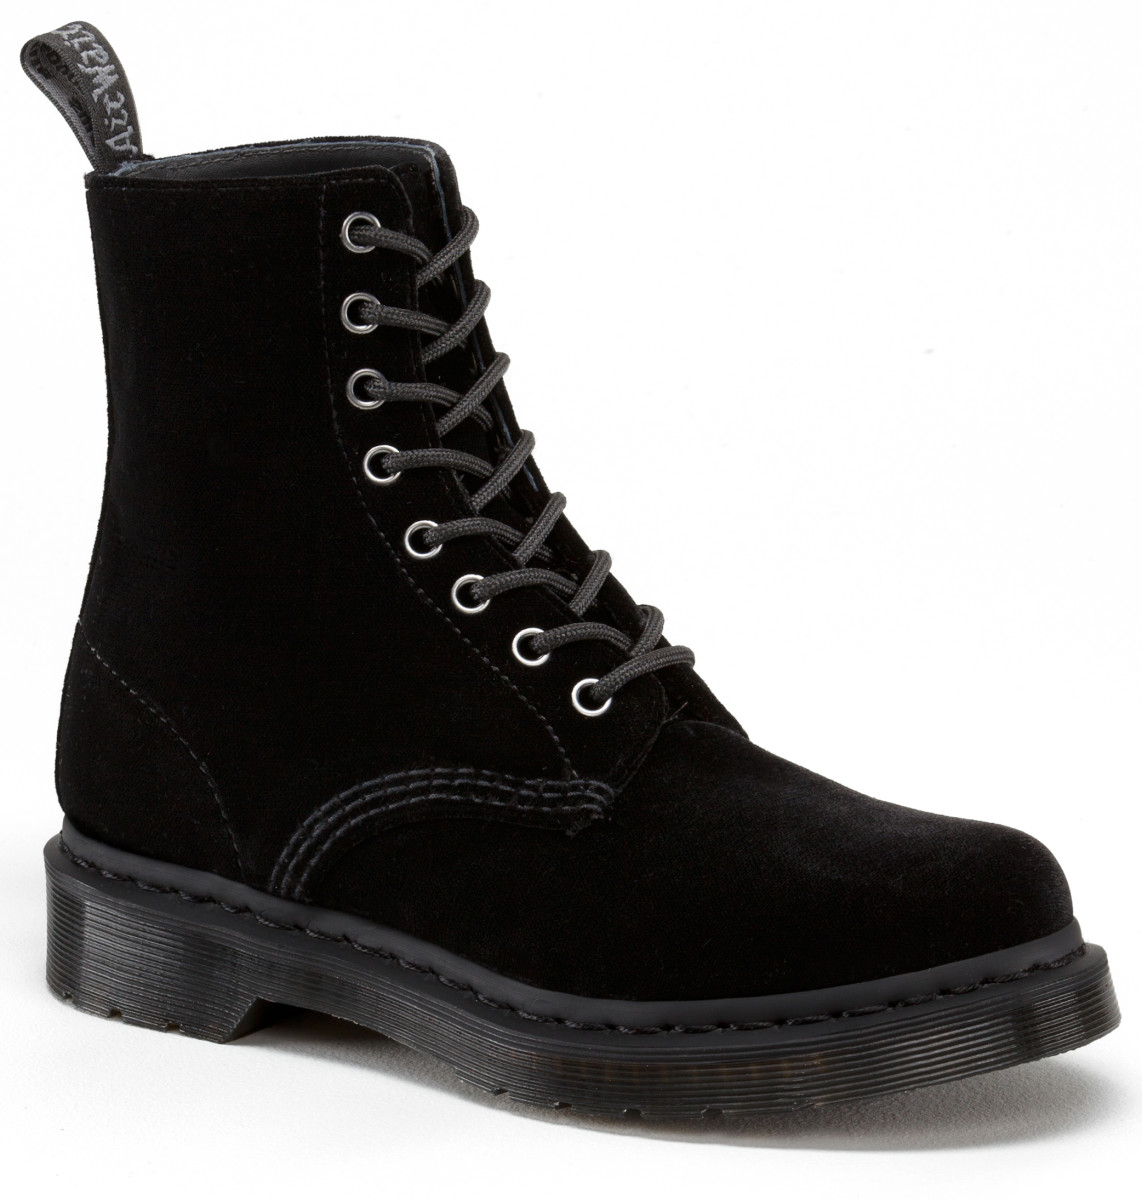 Dr. Martens Page Boot in Black Velvet, $70, available at Dr. Martens